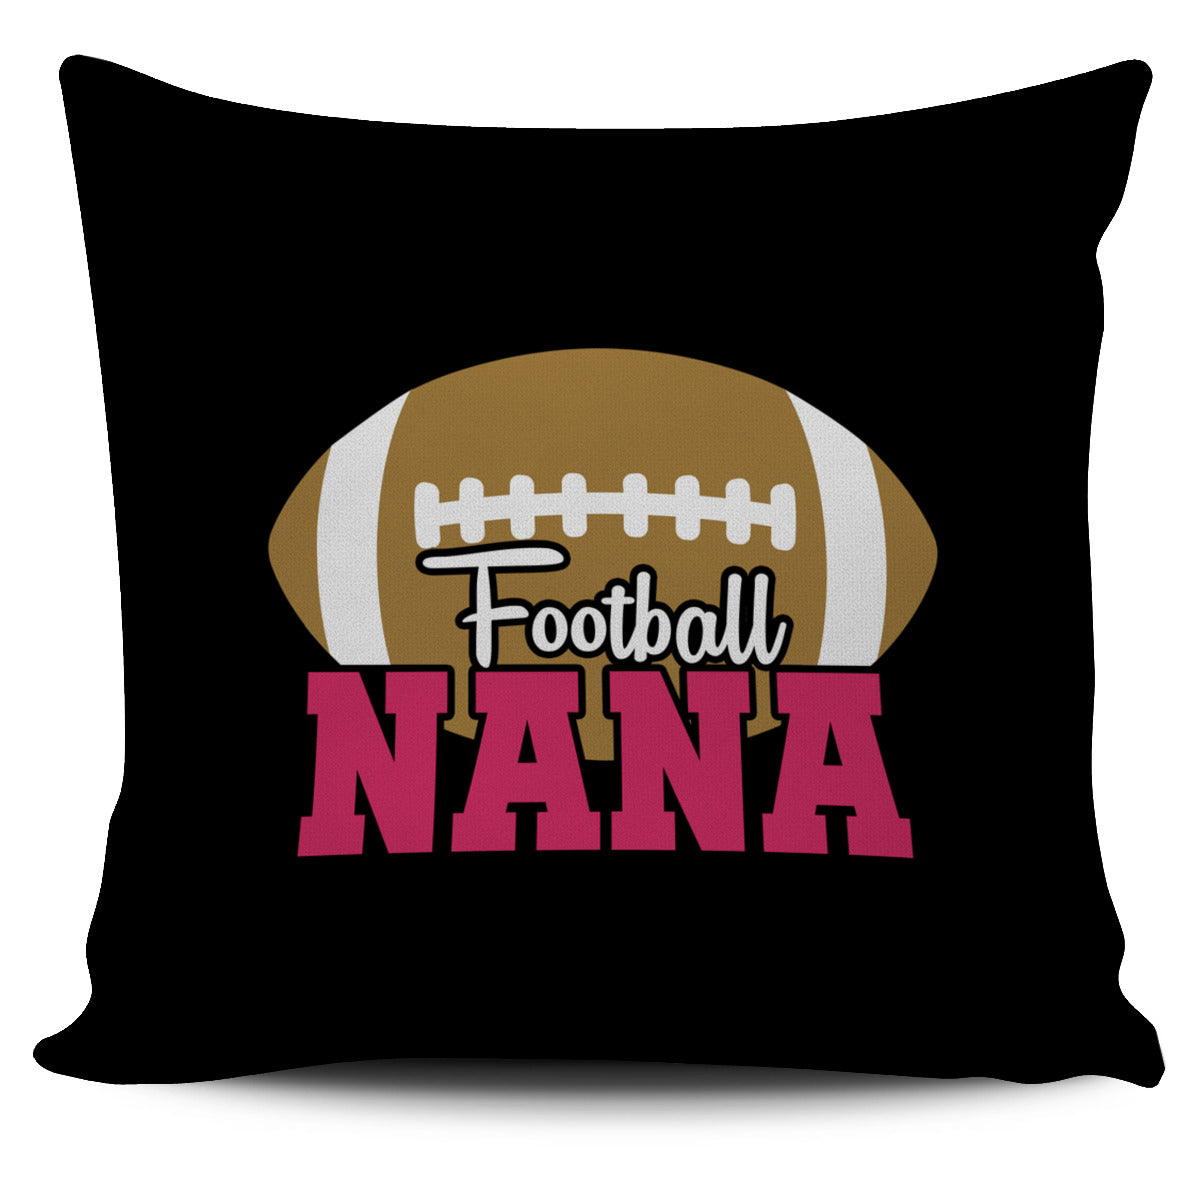 Football Nana Pillow Cover AL60